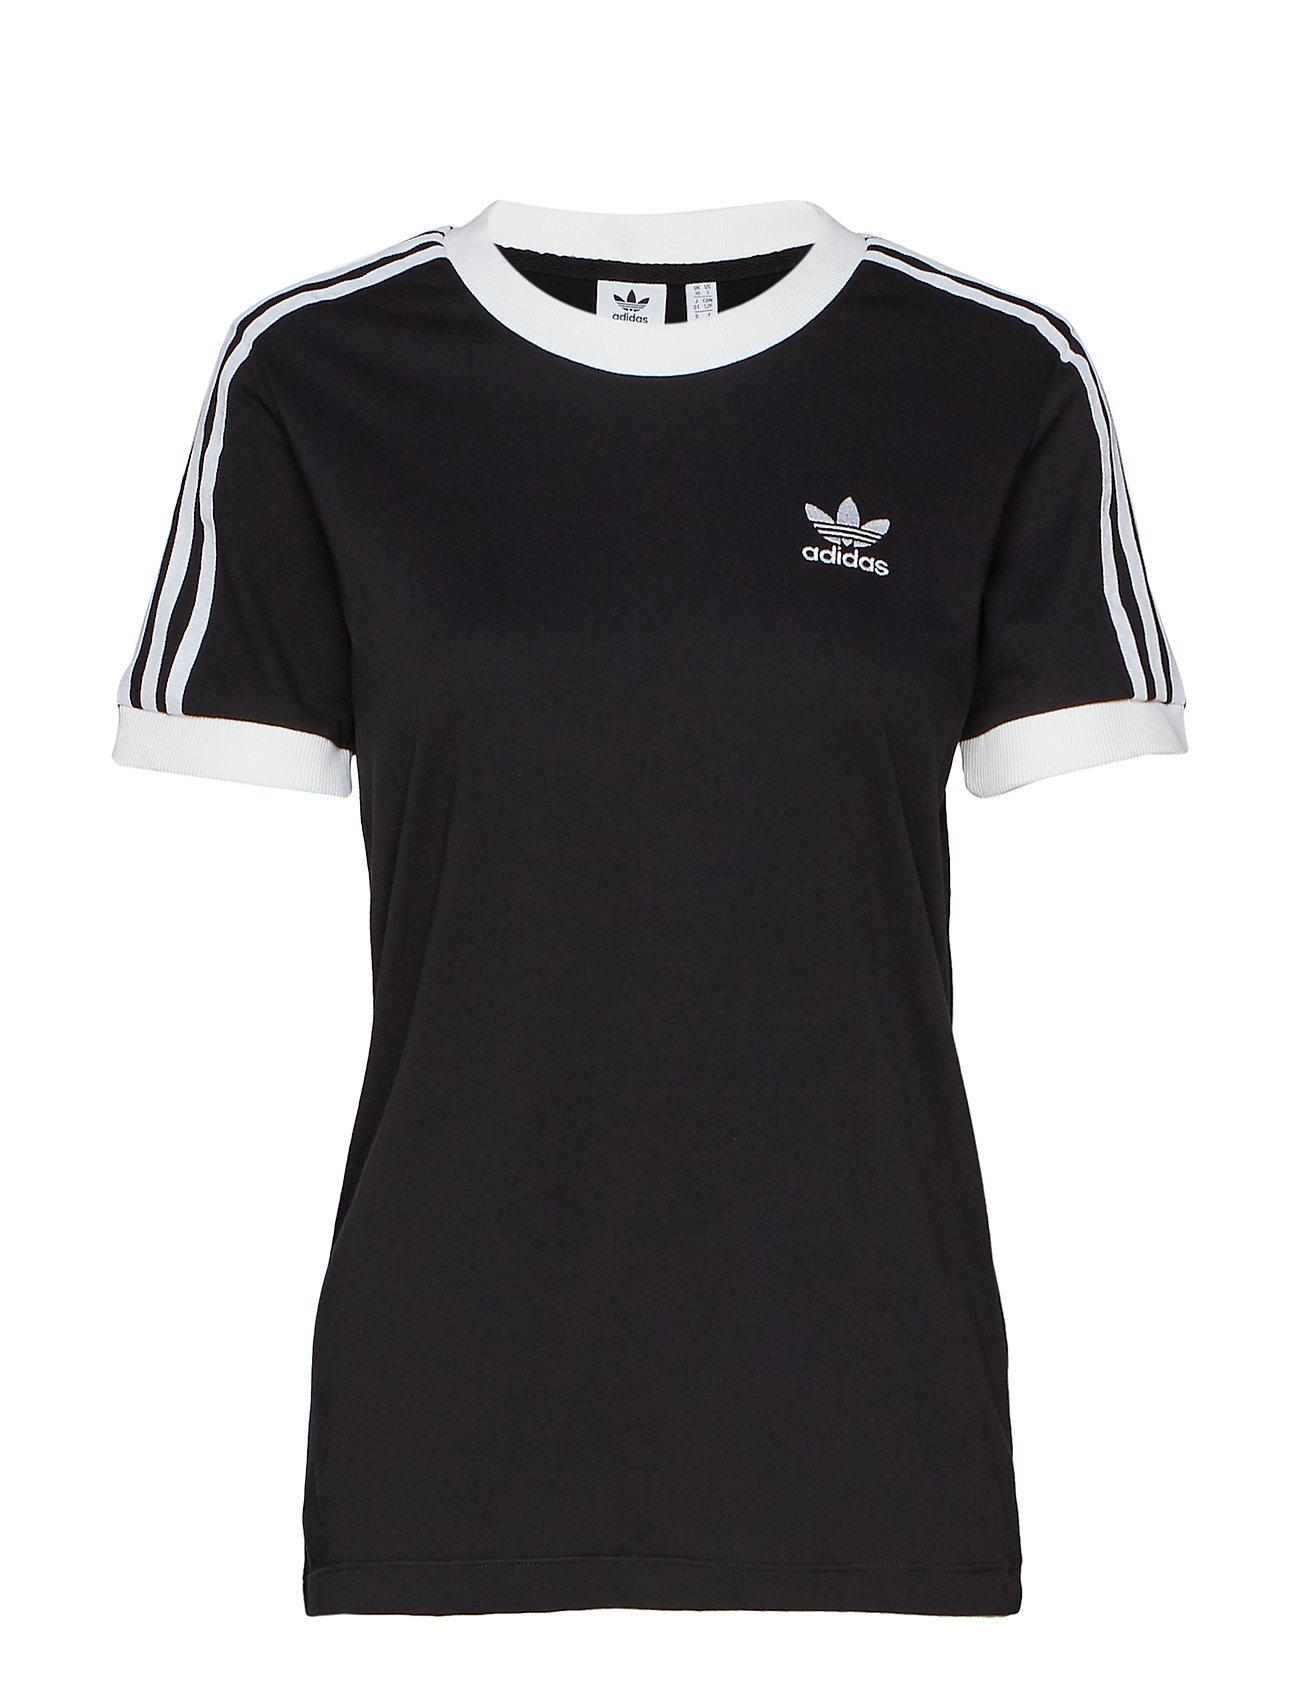 adidas Originals 3 STR TEE - BLACK